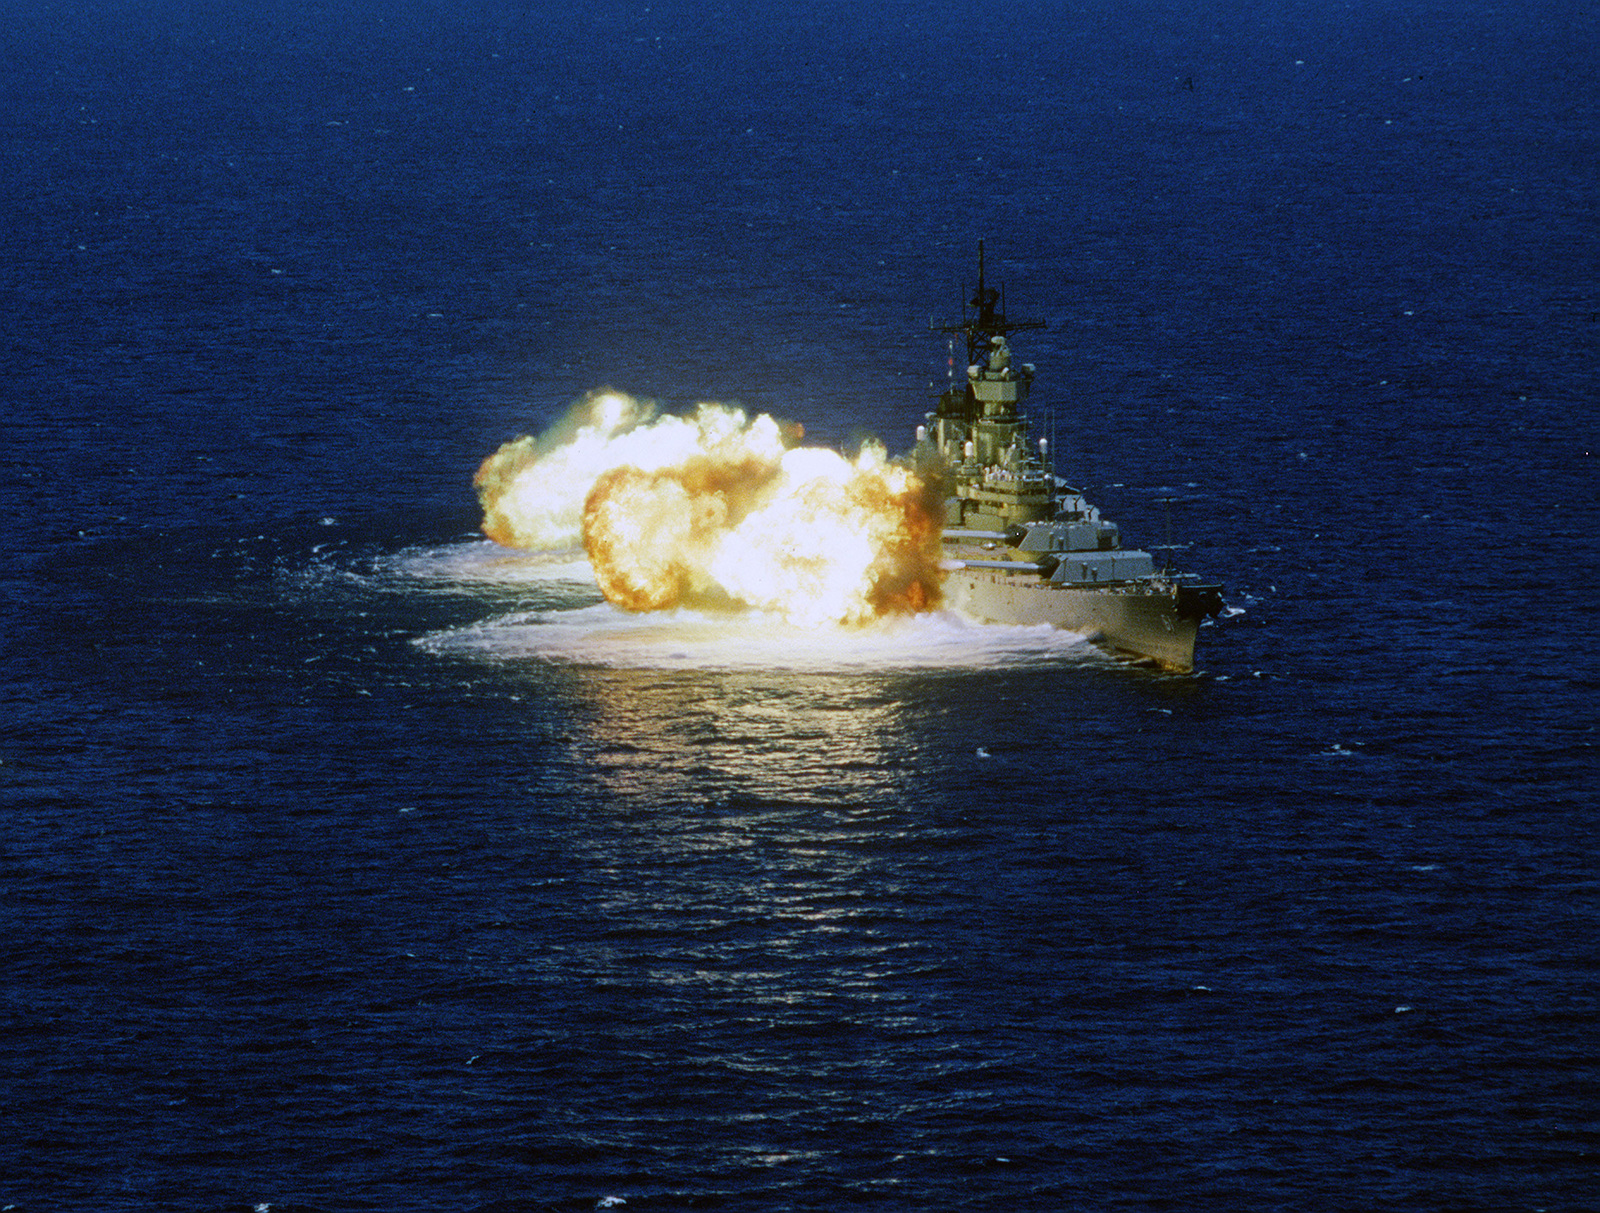 Aerial starboard bow view of the battleship USS IOWA (BB 61) firing a 15 gun salvo to starboard. The 15 gun salvo is comprised of all nine 16-inch .50 caliber main battery guns and the six starboard 5-inch .38 caliber guns. The IOWA is off the coast of Central America